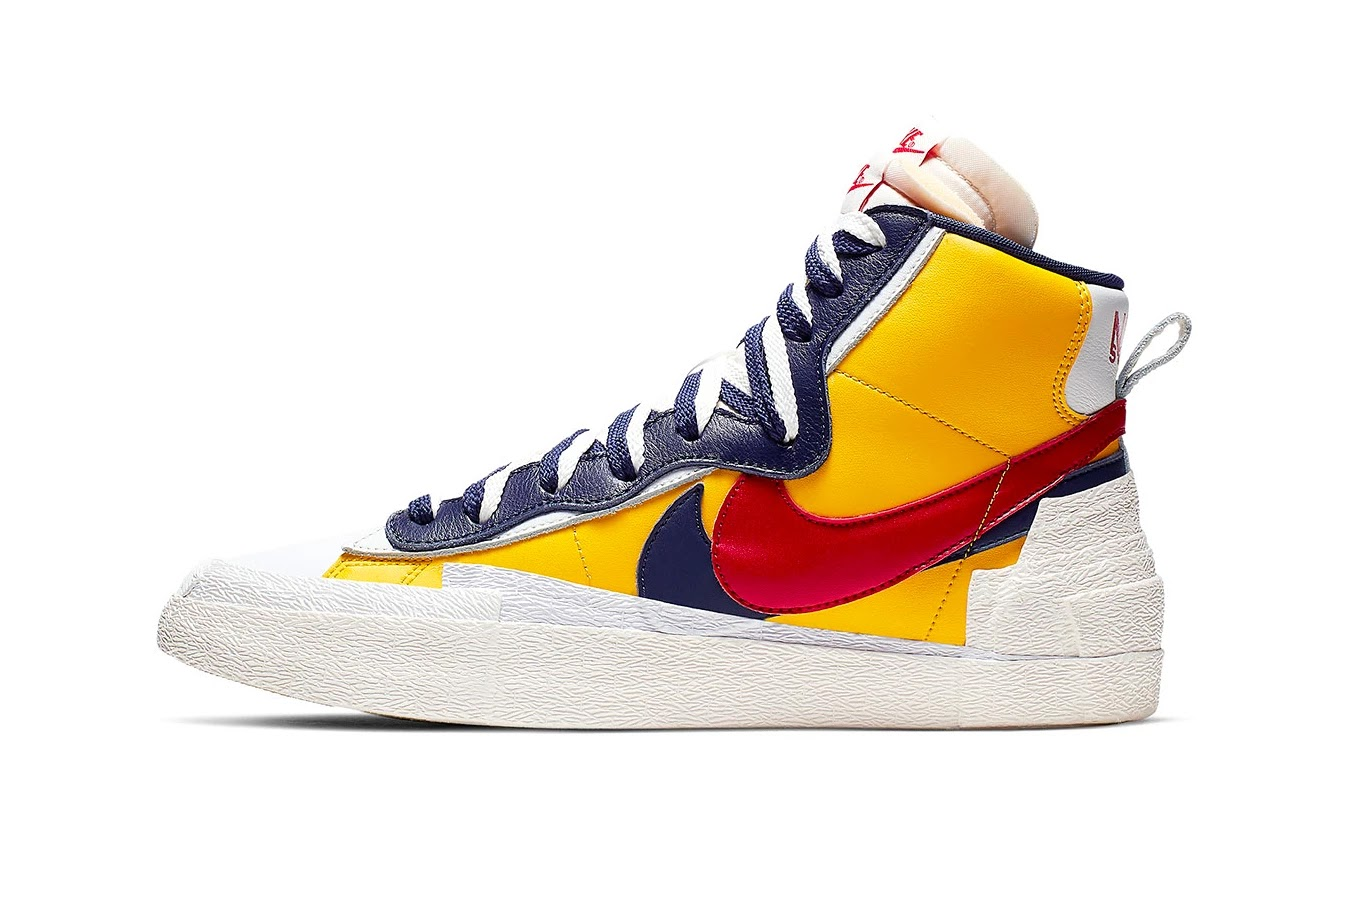 wholesale dealer e78af 37ee4 Having made its first appearance at sacai s Spring Summer 2019 runway show  during Paris Fashion Week last year, the crossover Nike Blazer High now  receives ...